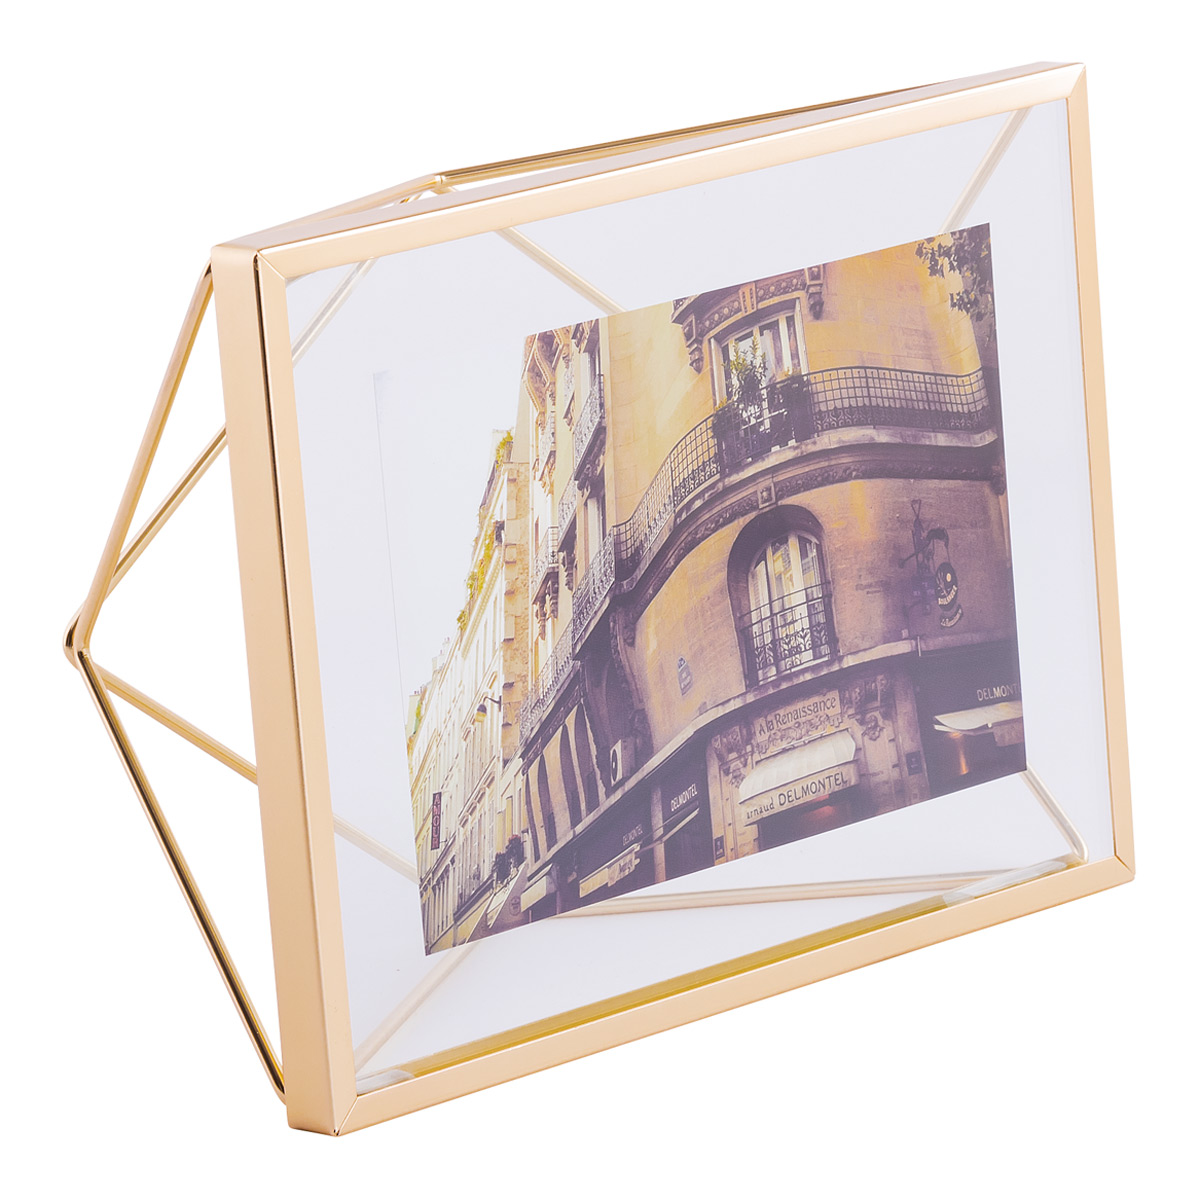 Prisma Picture Display Frame